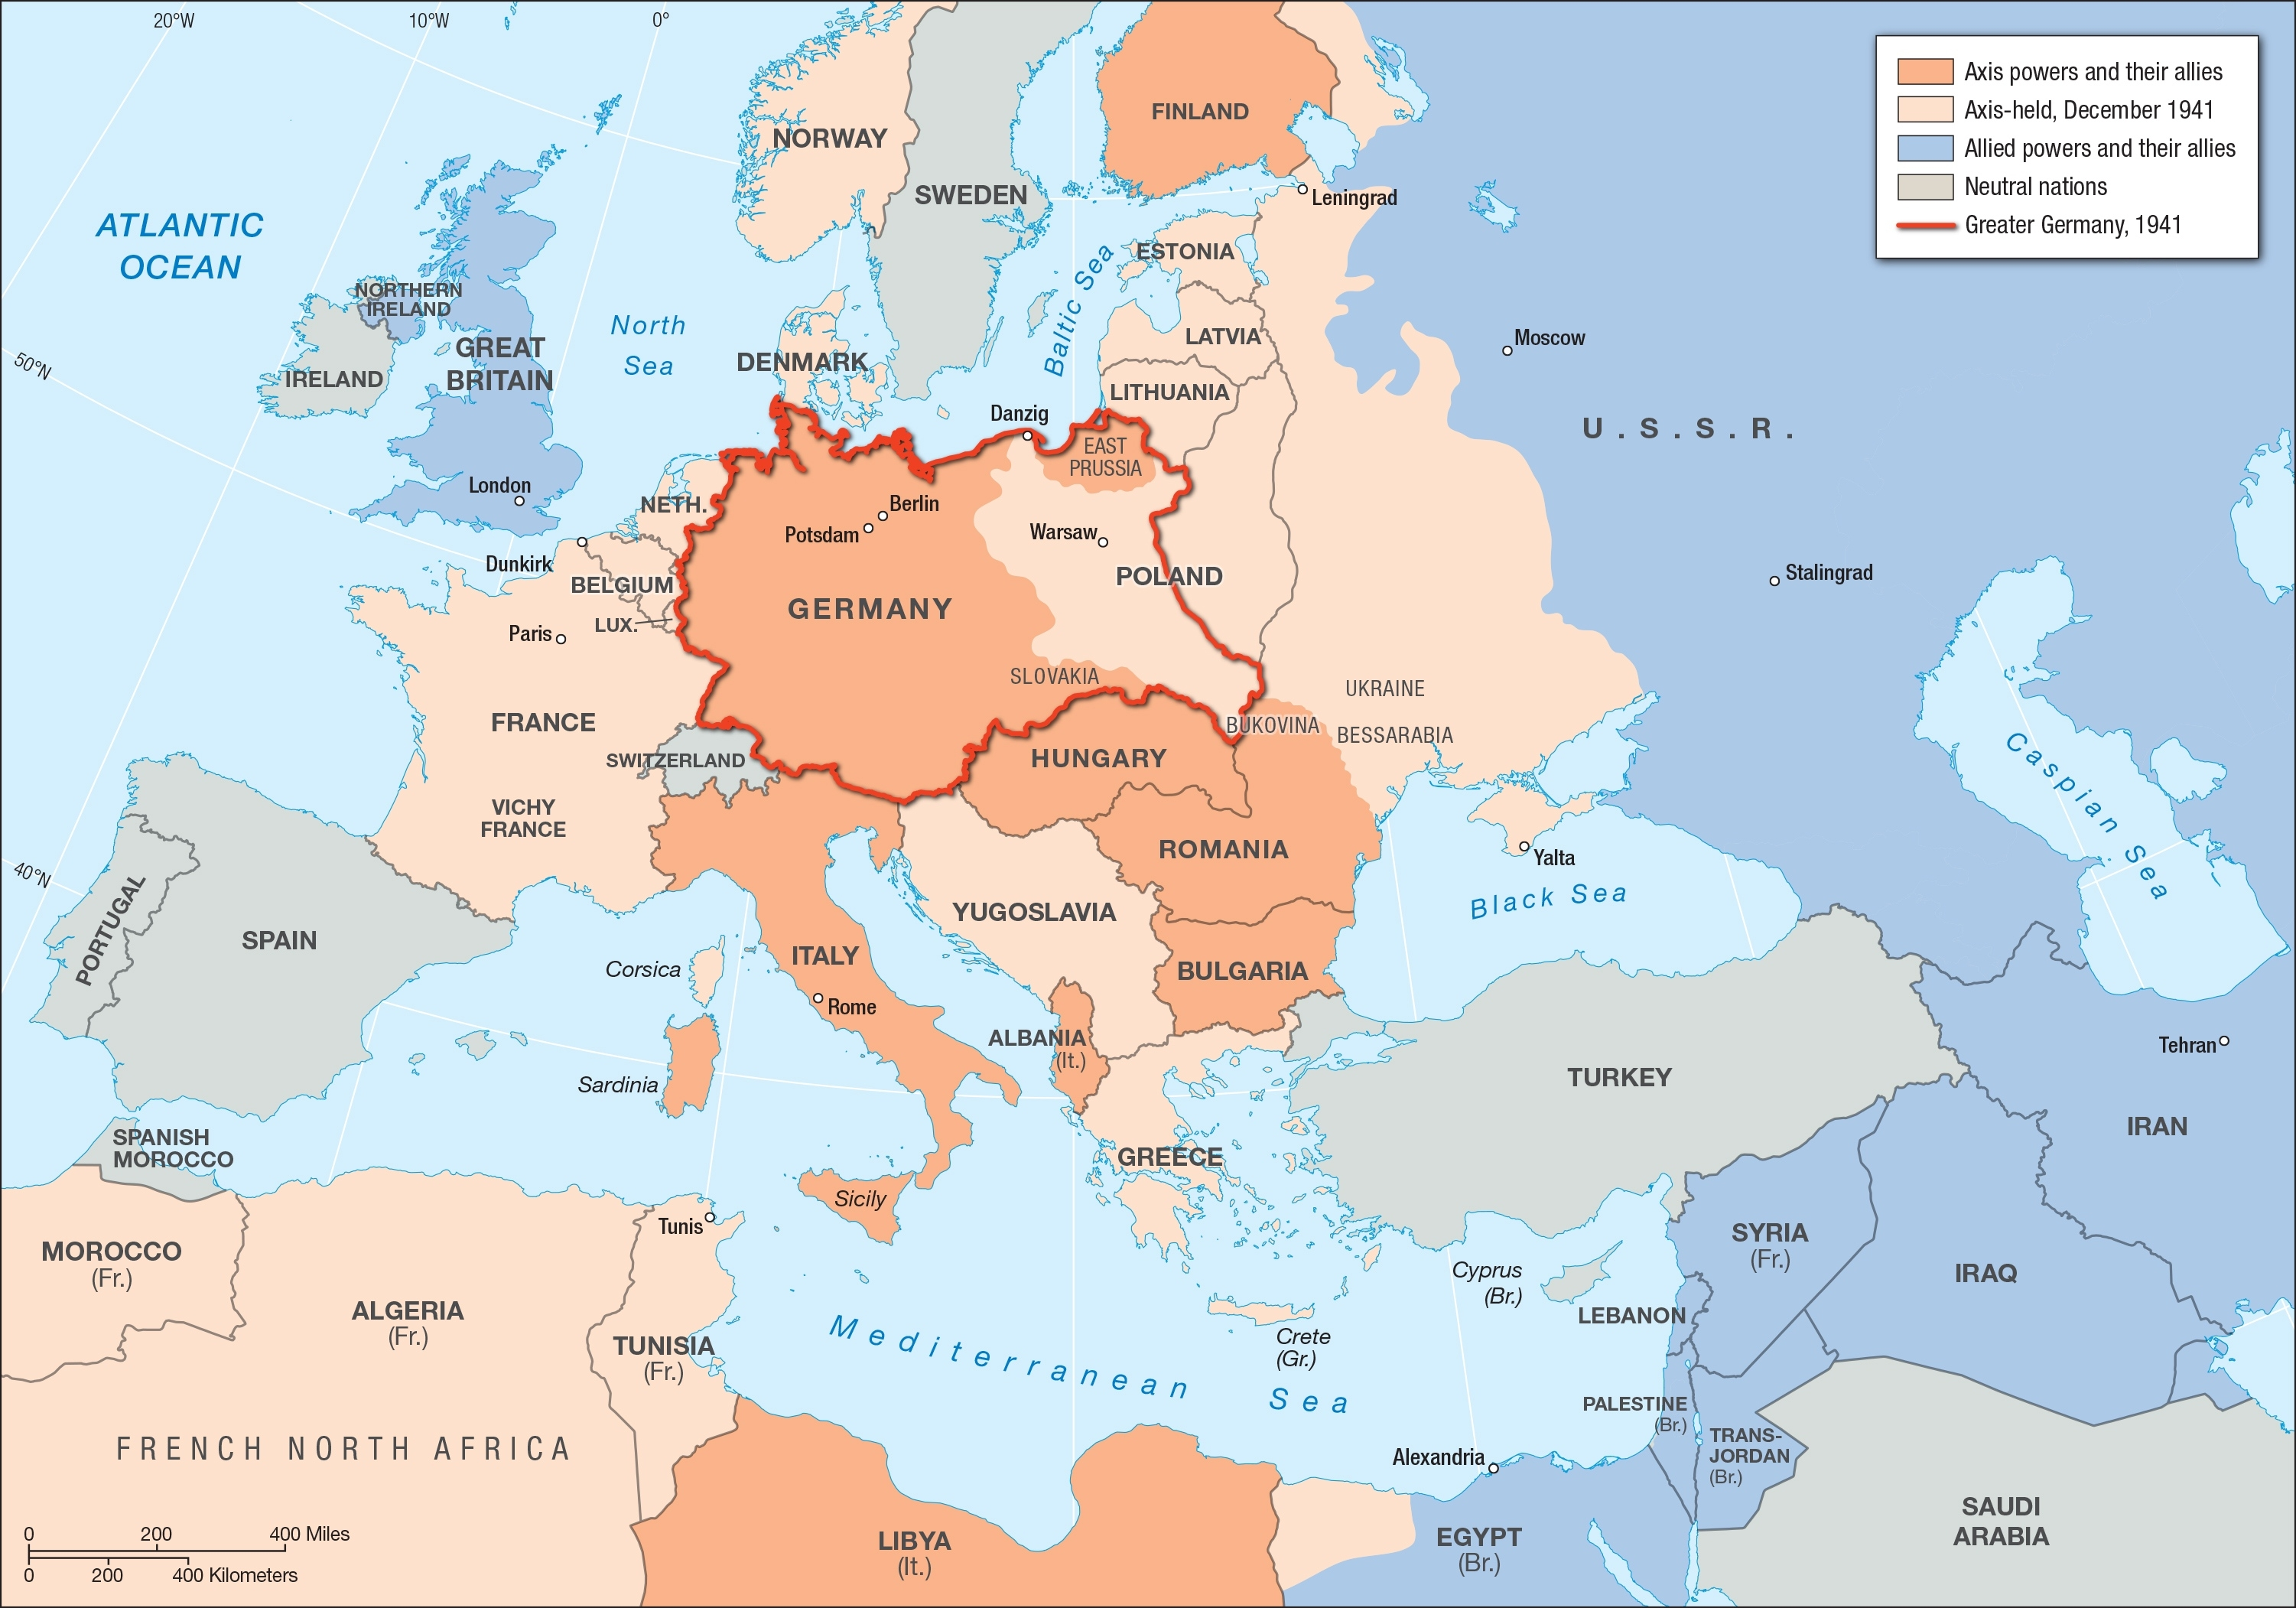 Europe In Germany's Grasp   Facing History And Ourselves pertaining to German Invasion Of Europe Map